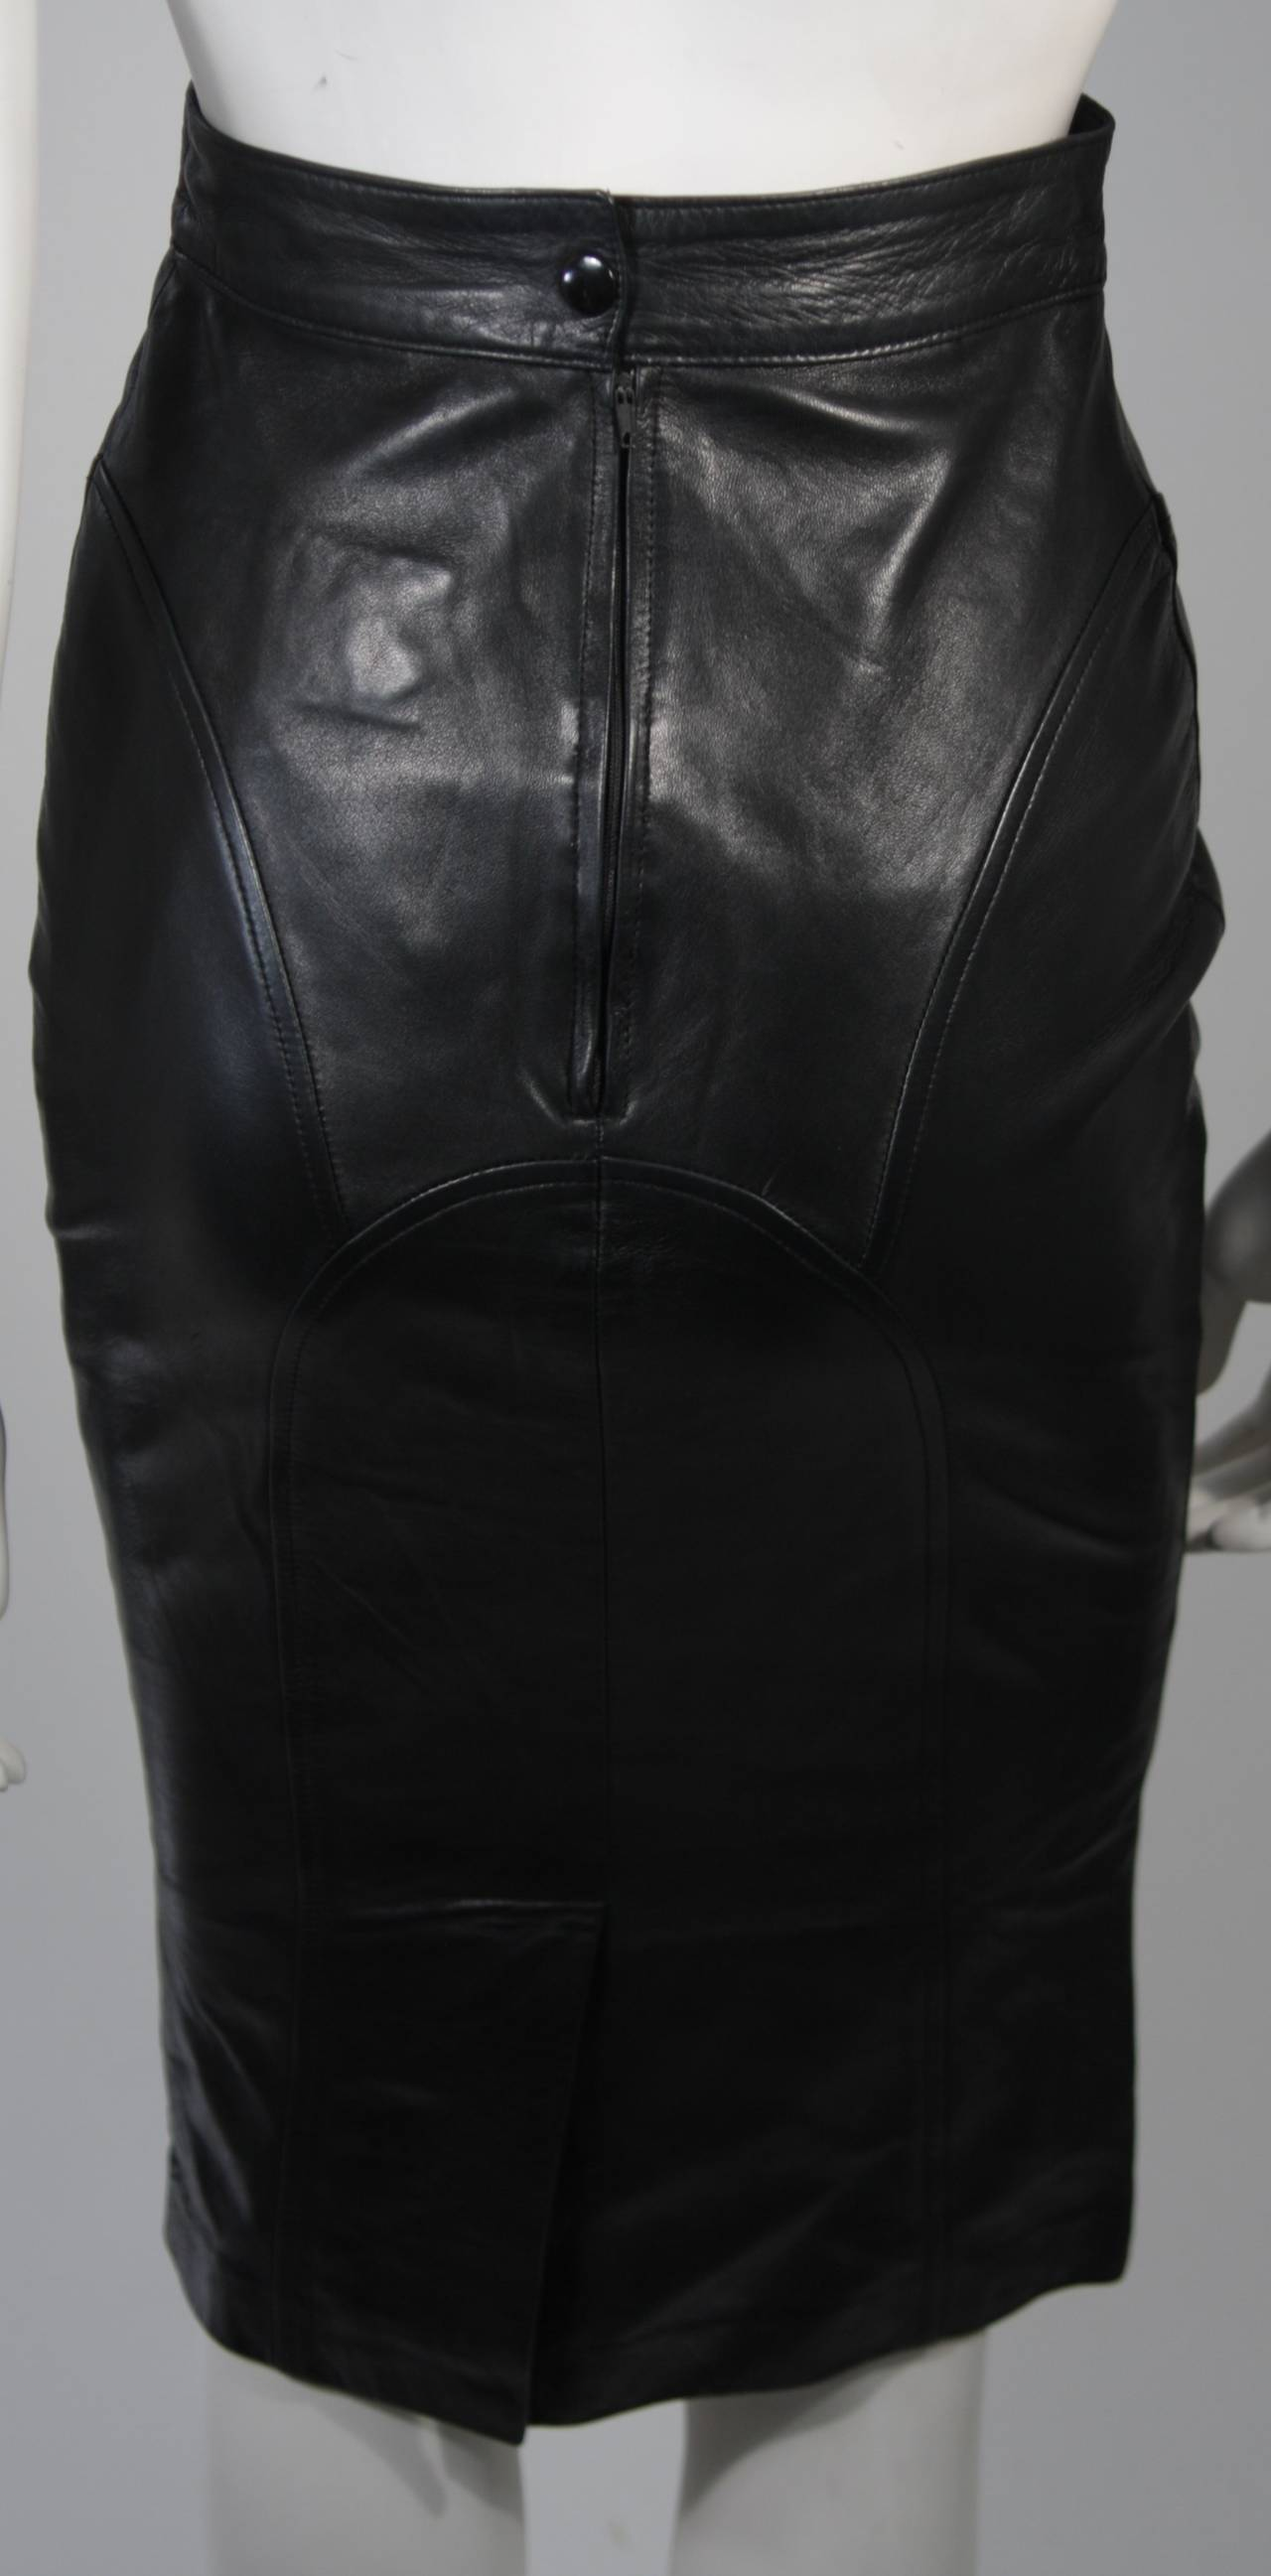 Jean Claude Jitrois Black Leather Skirt Size Extra Small 8